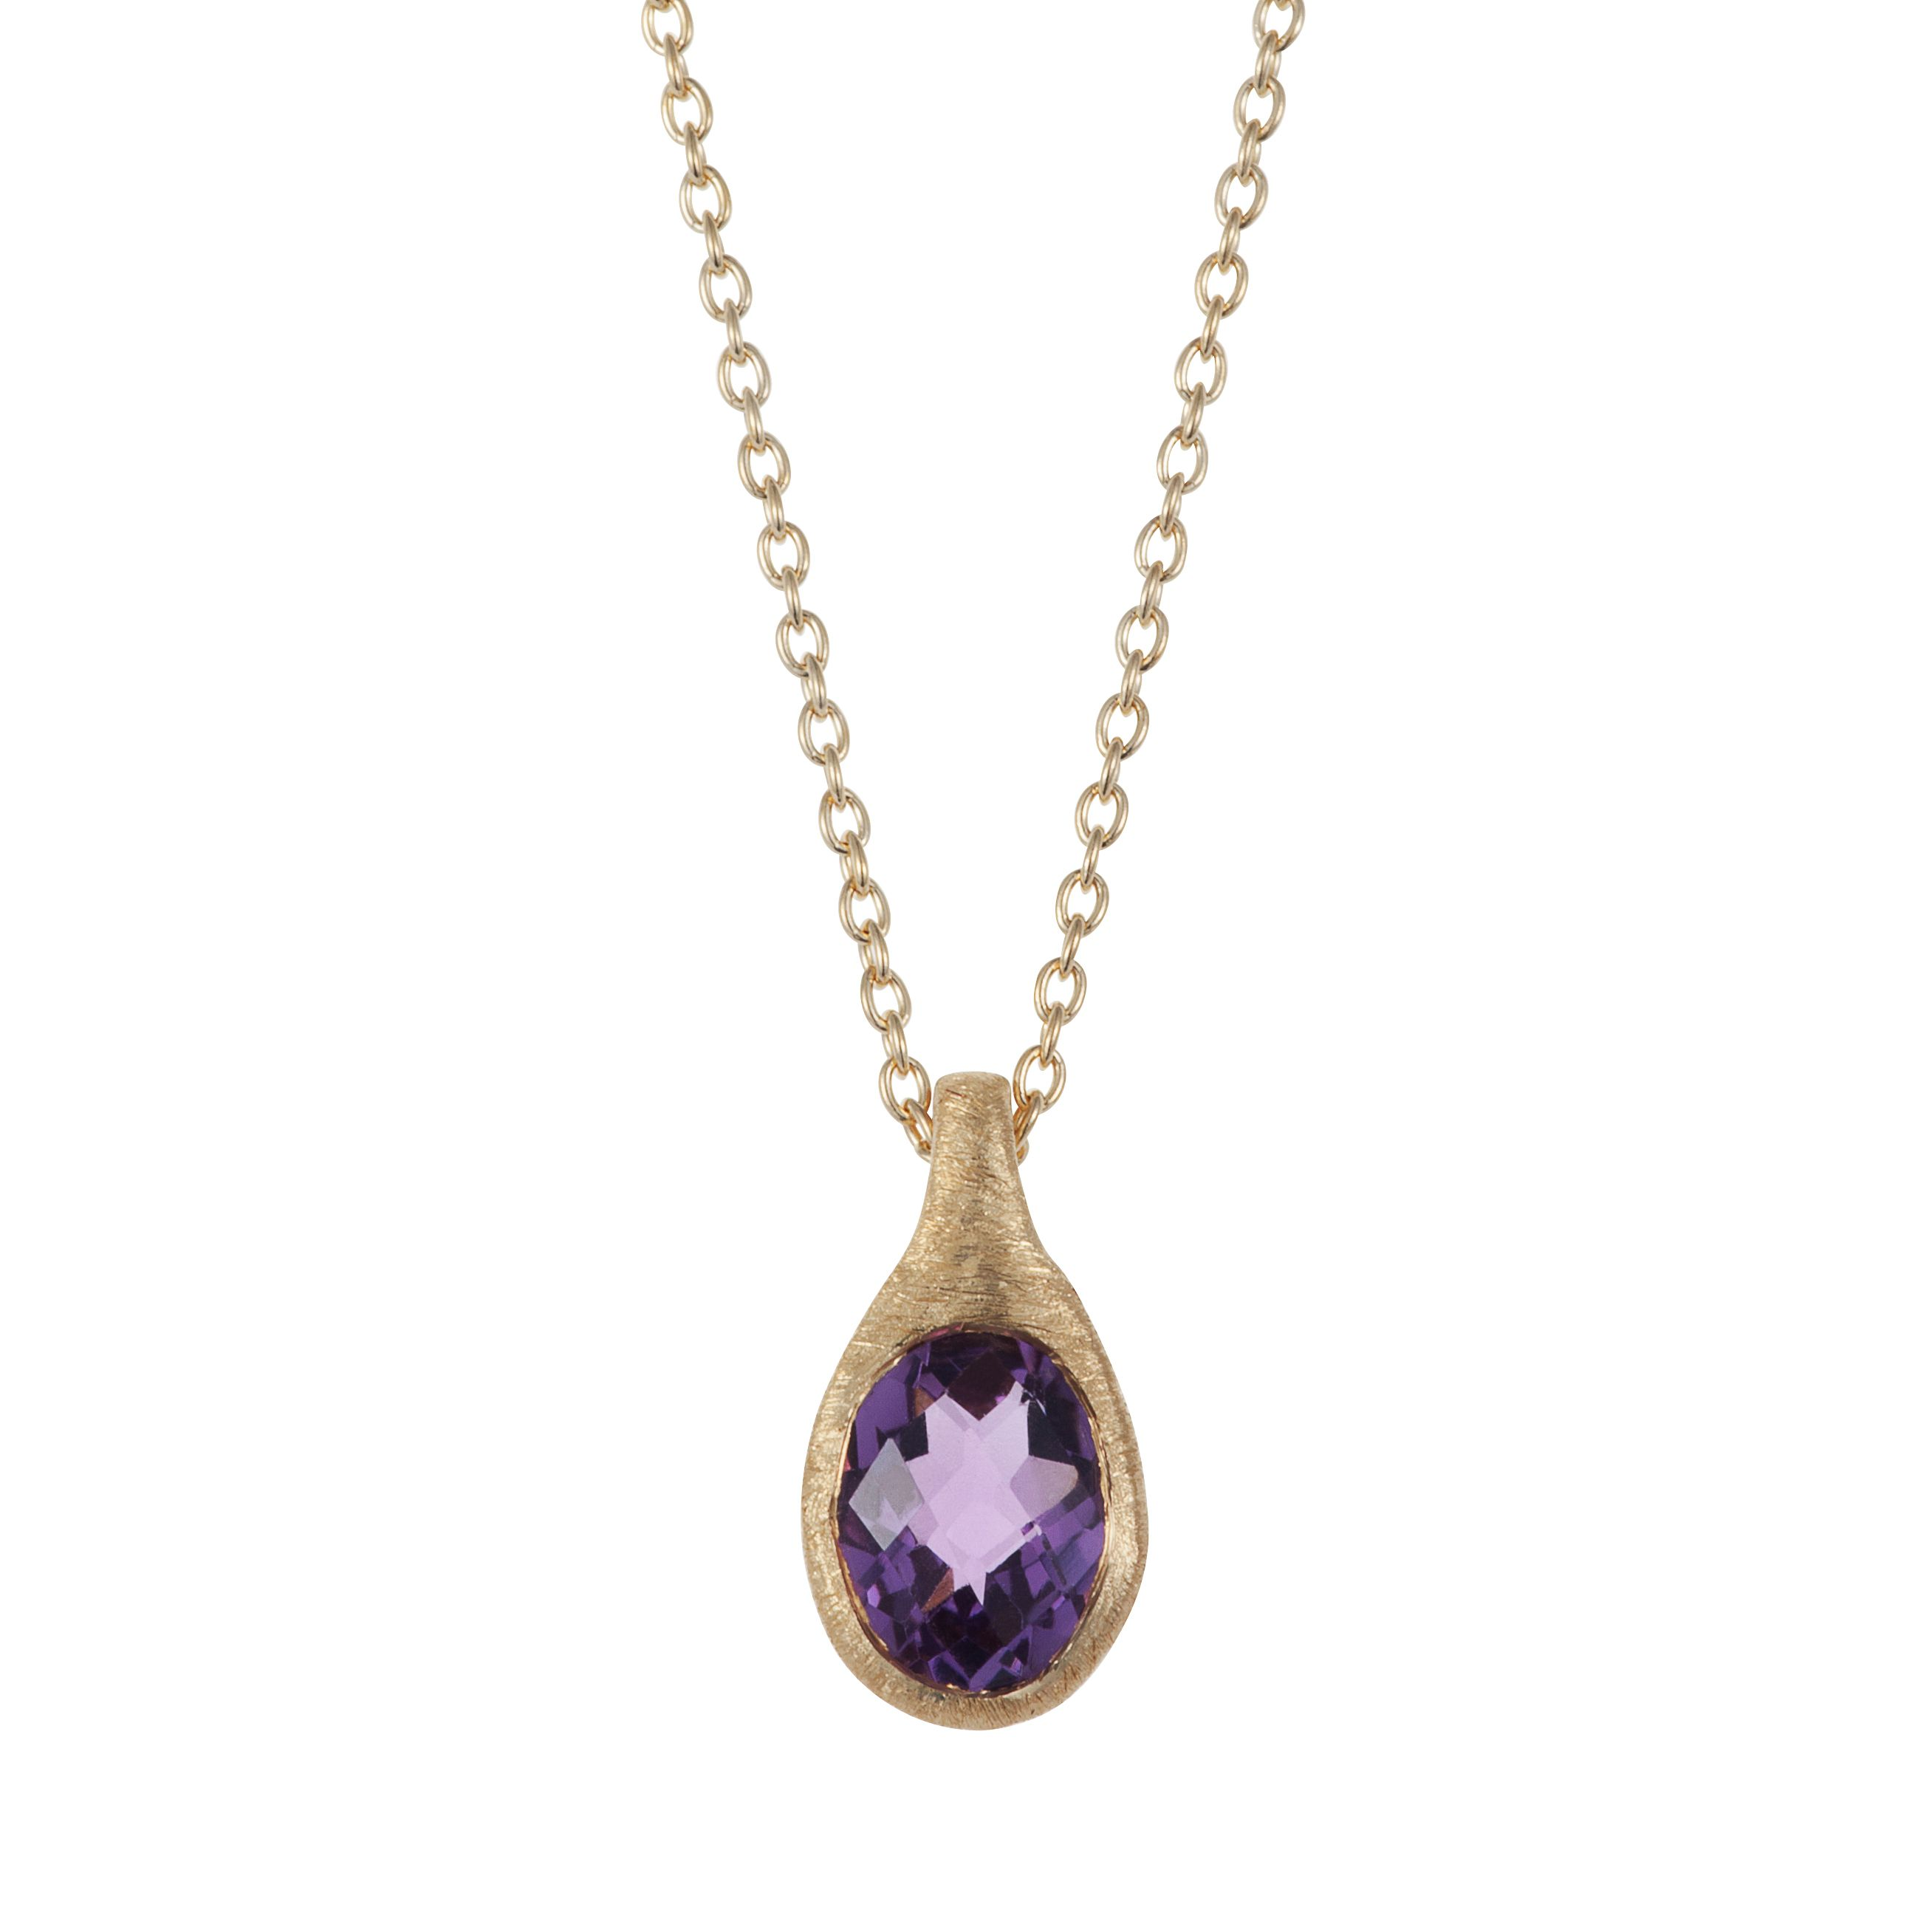 18ct gold plated sterling silver 1.25ct amethyst